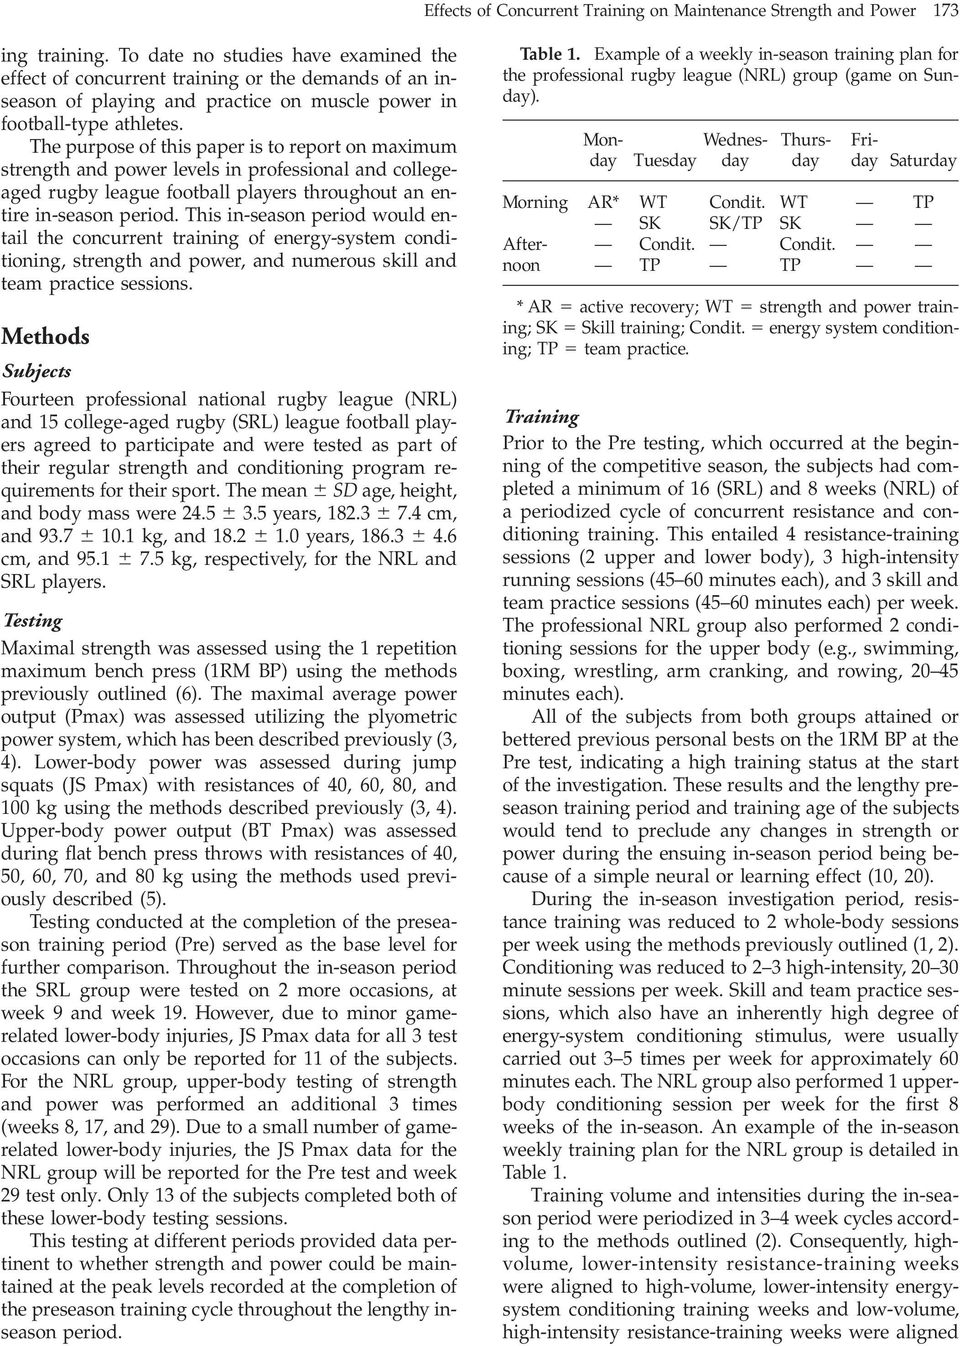 The purpose of this paper is to report on maximum strength and power levels in professional and collegeaged rugby league football players throughout an entire in-season period.